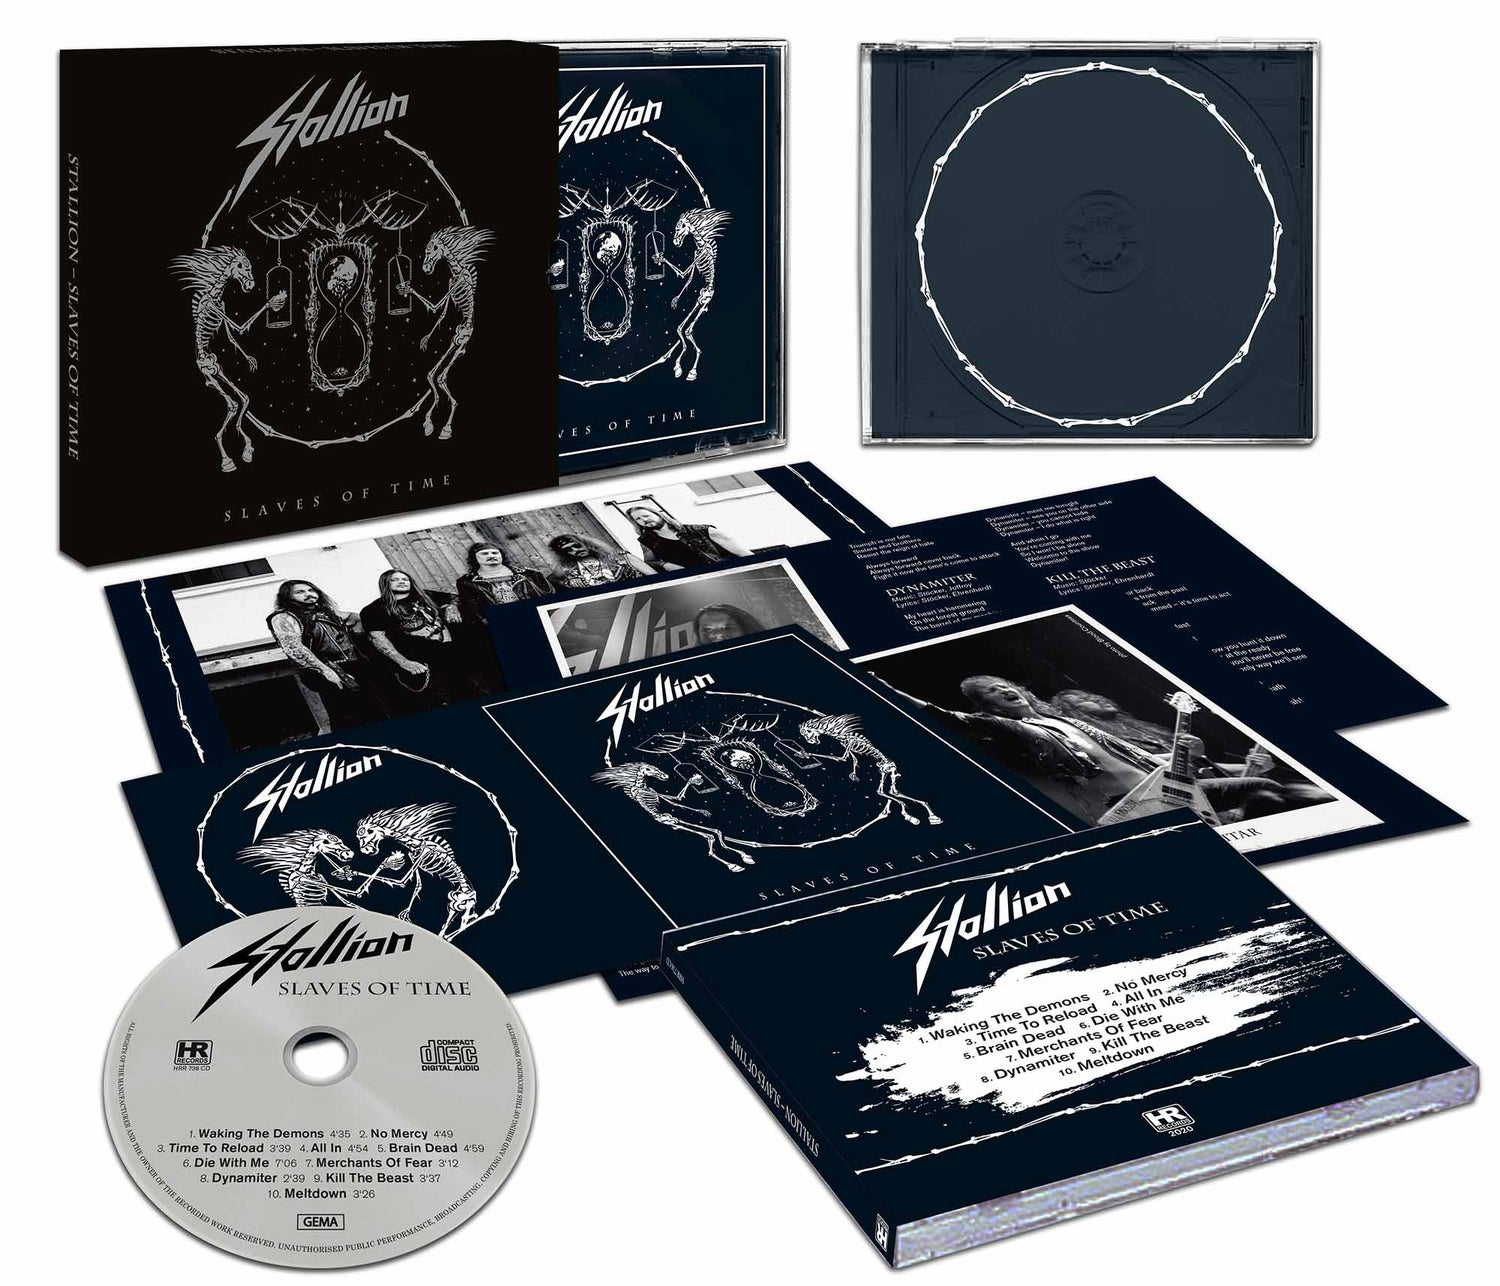 Image of Slaves of Time - Slipcase CD (PreOrder - getting shipped on February 27th)